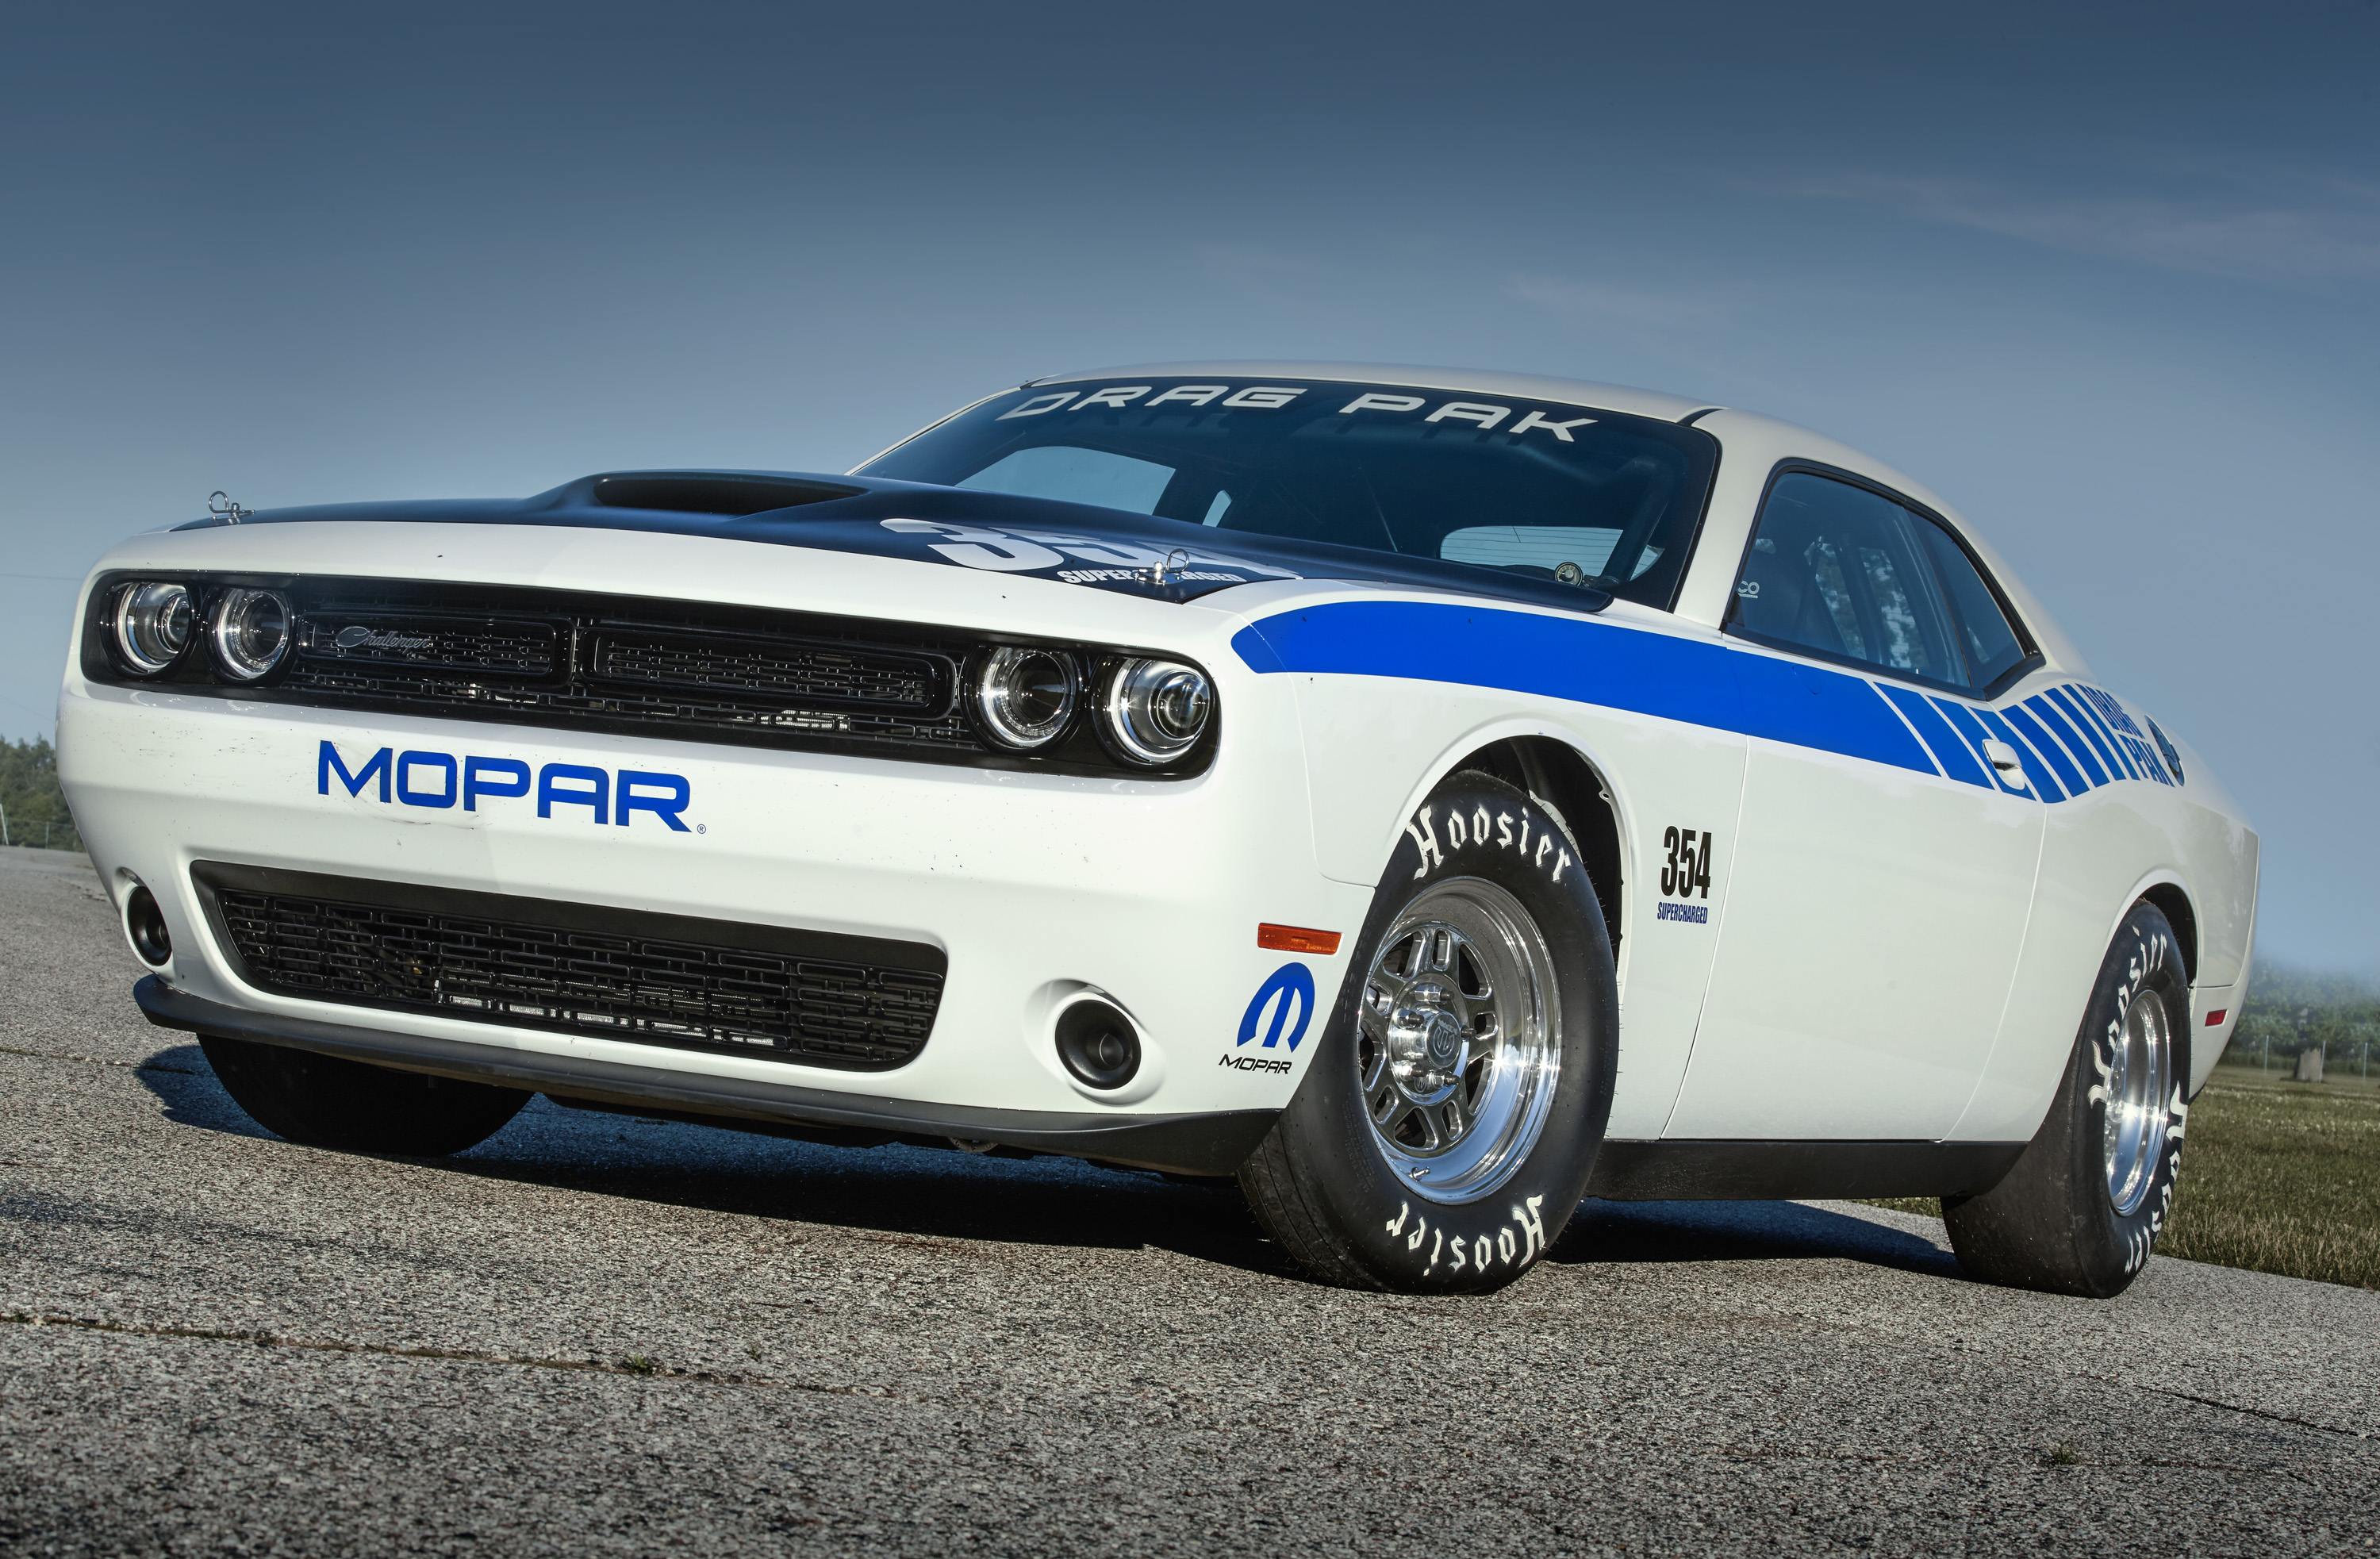 2016 Dodge Mopar Challenger Drag Pak | Top Speed